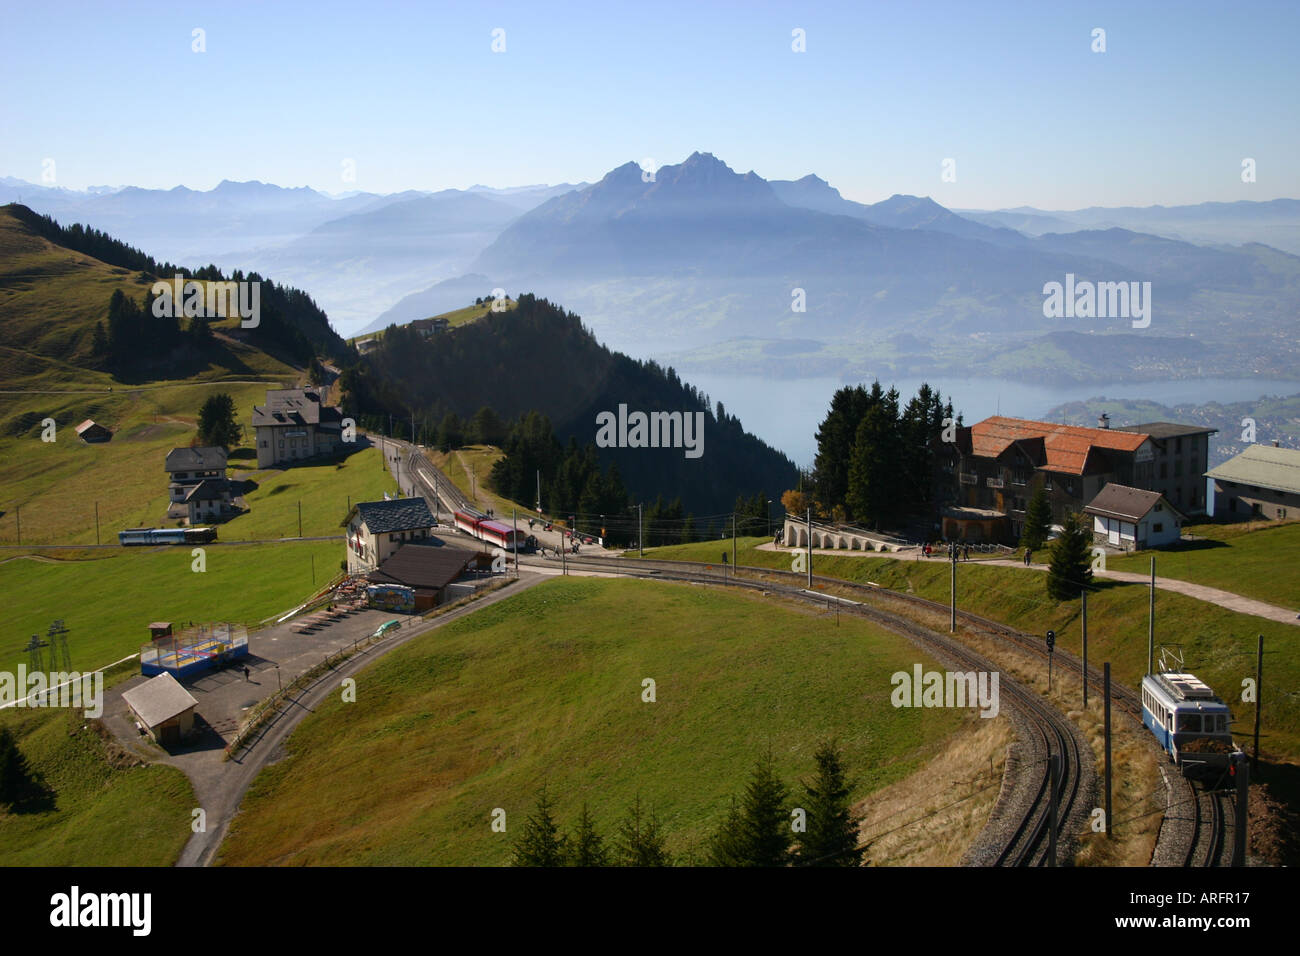 View to Mount Pilatus from near the top of the Rigi mountain. - Stock Image